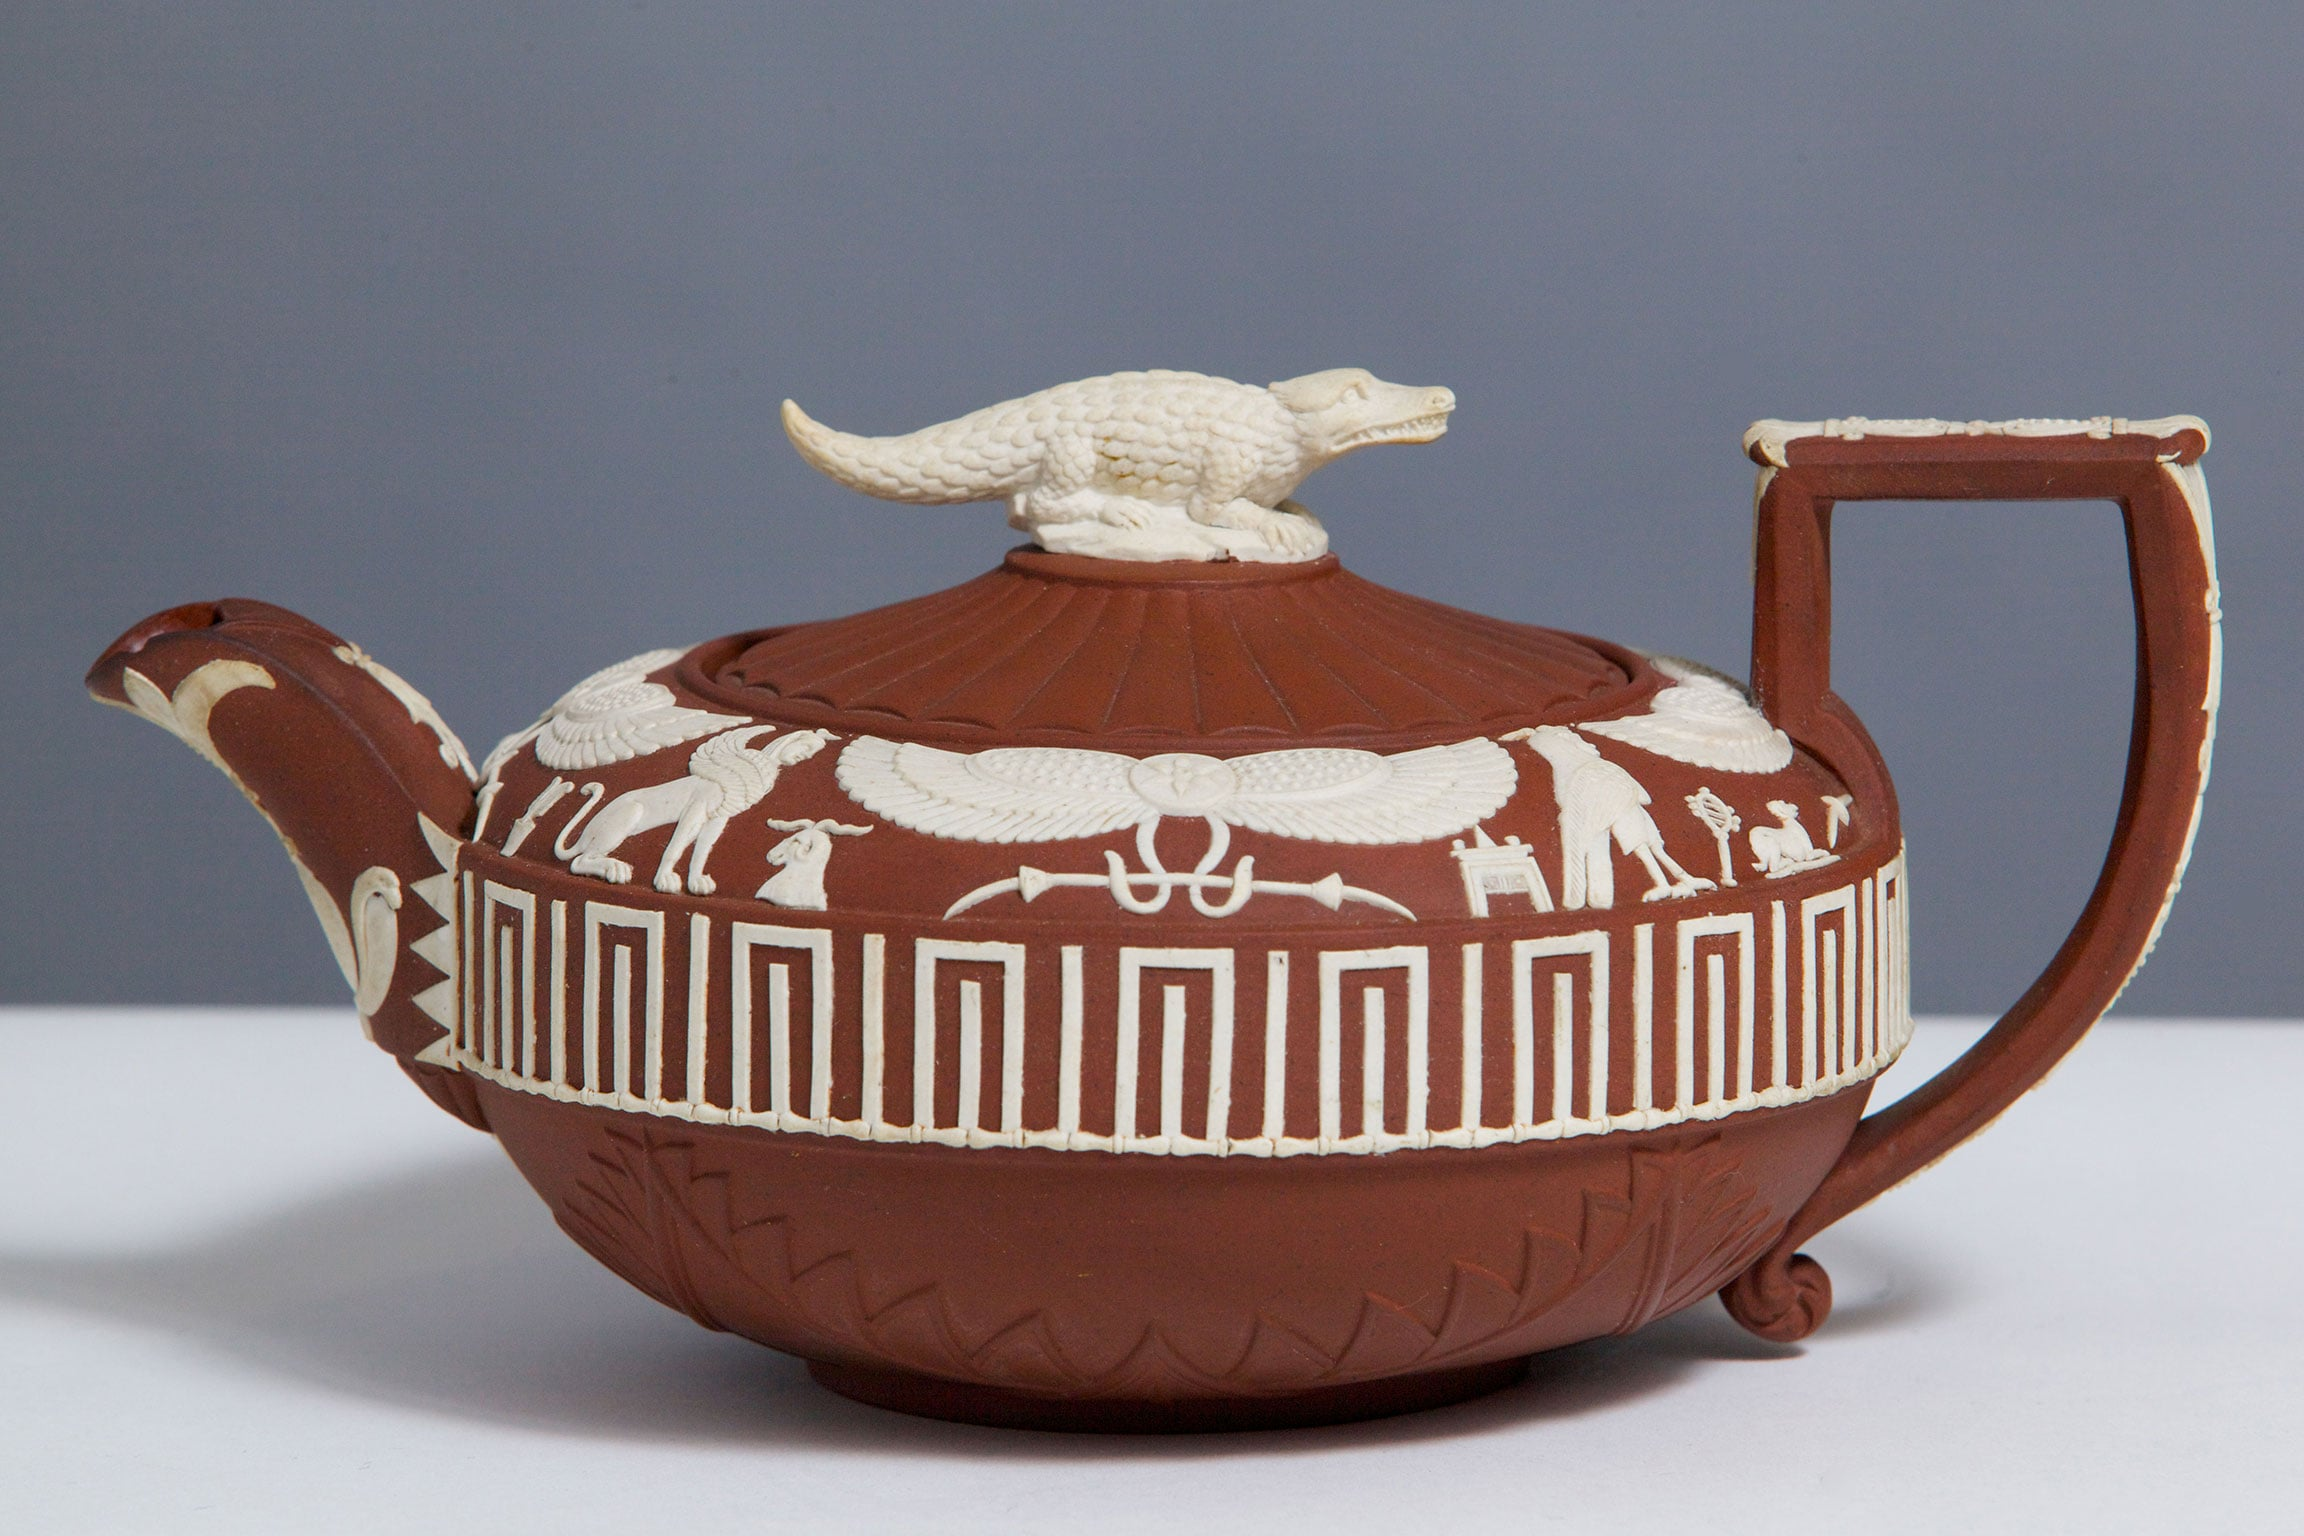 7. Egyptian-style teapot with crocodile finial, 1800 - Courtesy The Wedgwood Museum. Photo: © Phil Sayer